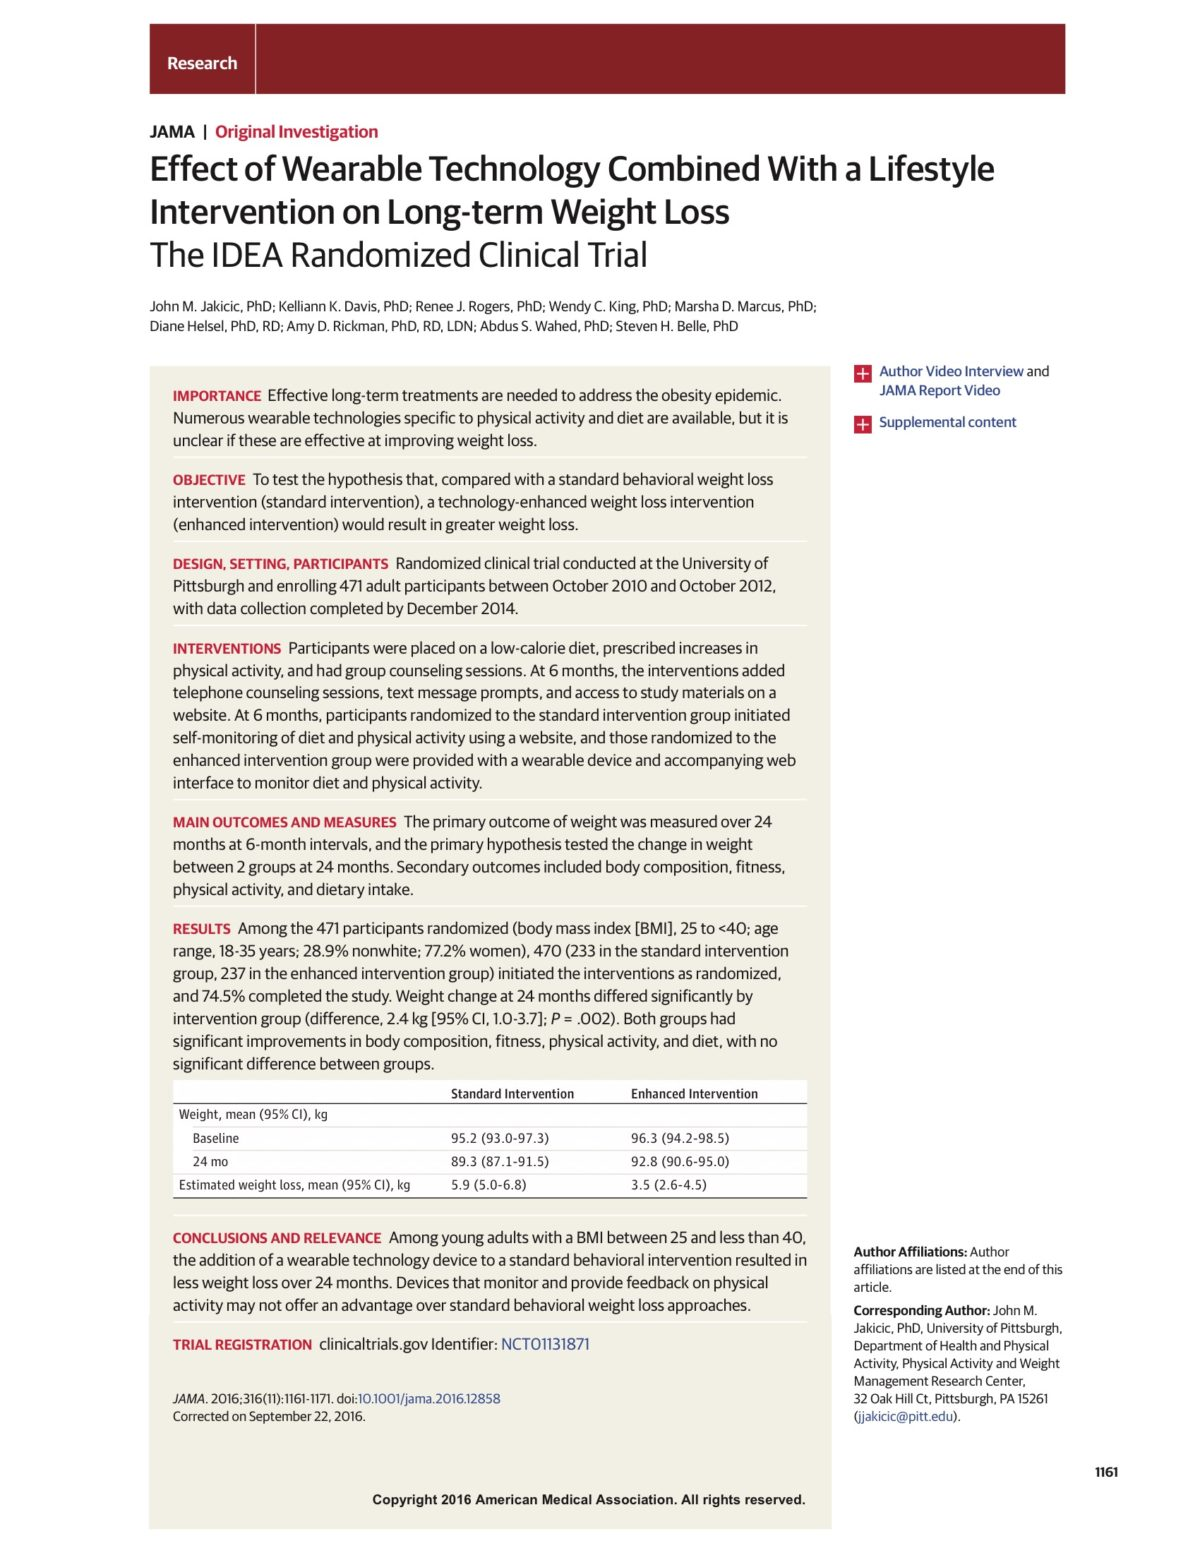 Jakicic JM, Davis KK, Rogers RJ, et al. Effect of Wearable Technology Combined With a Lifestyle Intervention on Long-term Weight Loss. JAMA. 2016;316(11):1161. Available at: http://jama.jamanetwork.com/article.aspx?doi=10.1001/jama.2016.12858 [Accessed September 29, 2016].